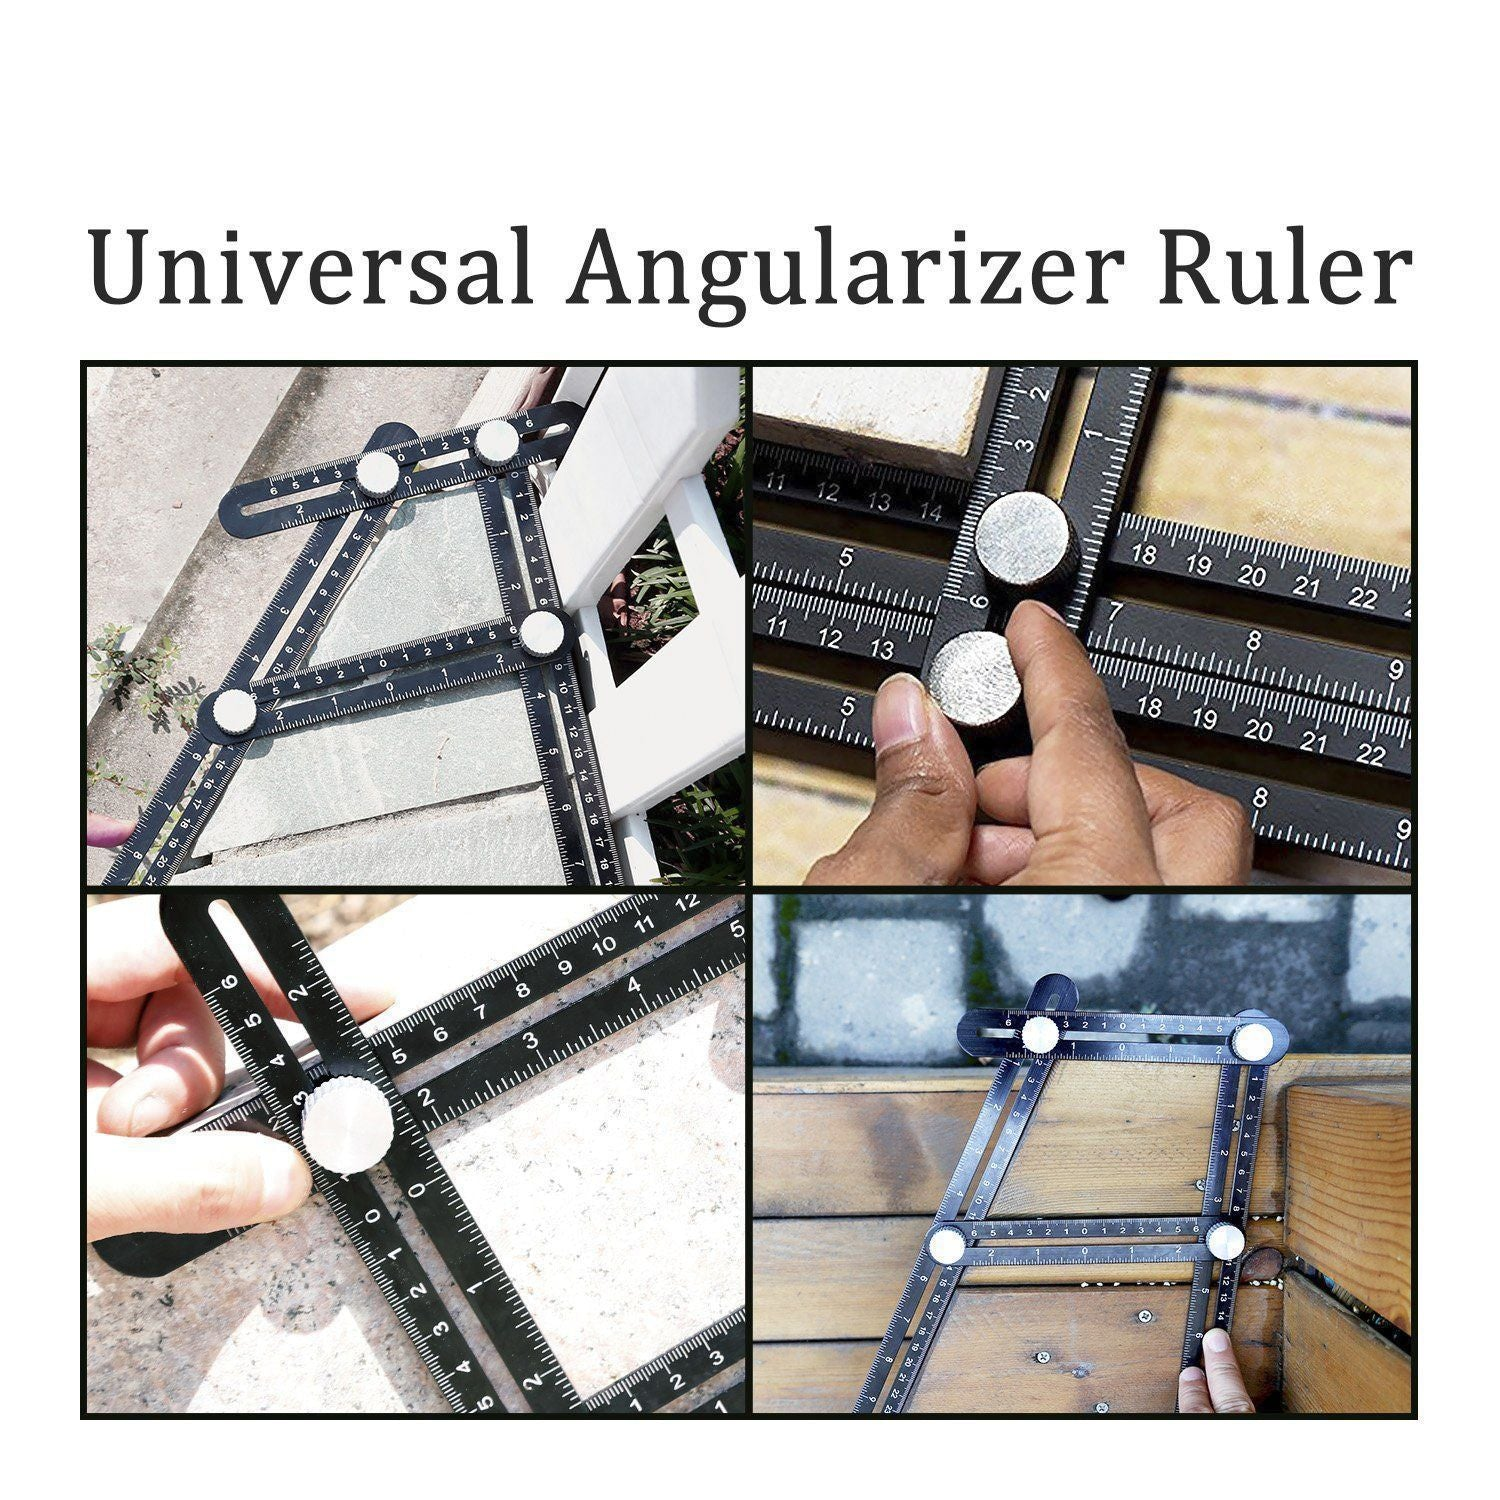 Amenitee Universal Angularizer Ruler